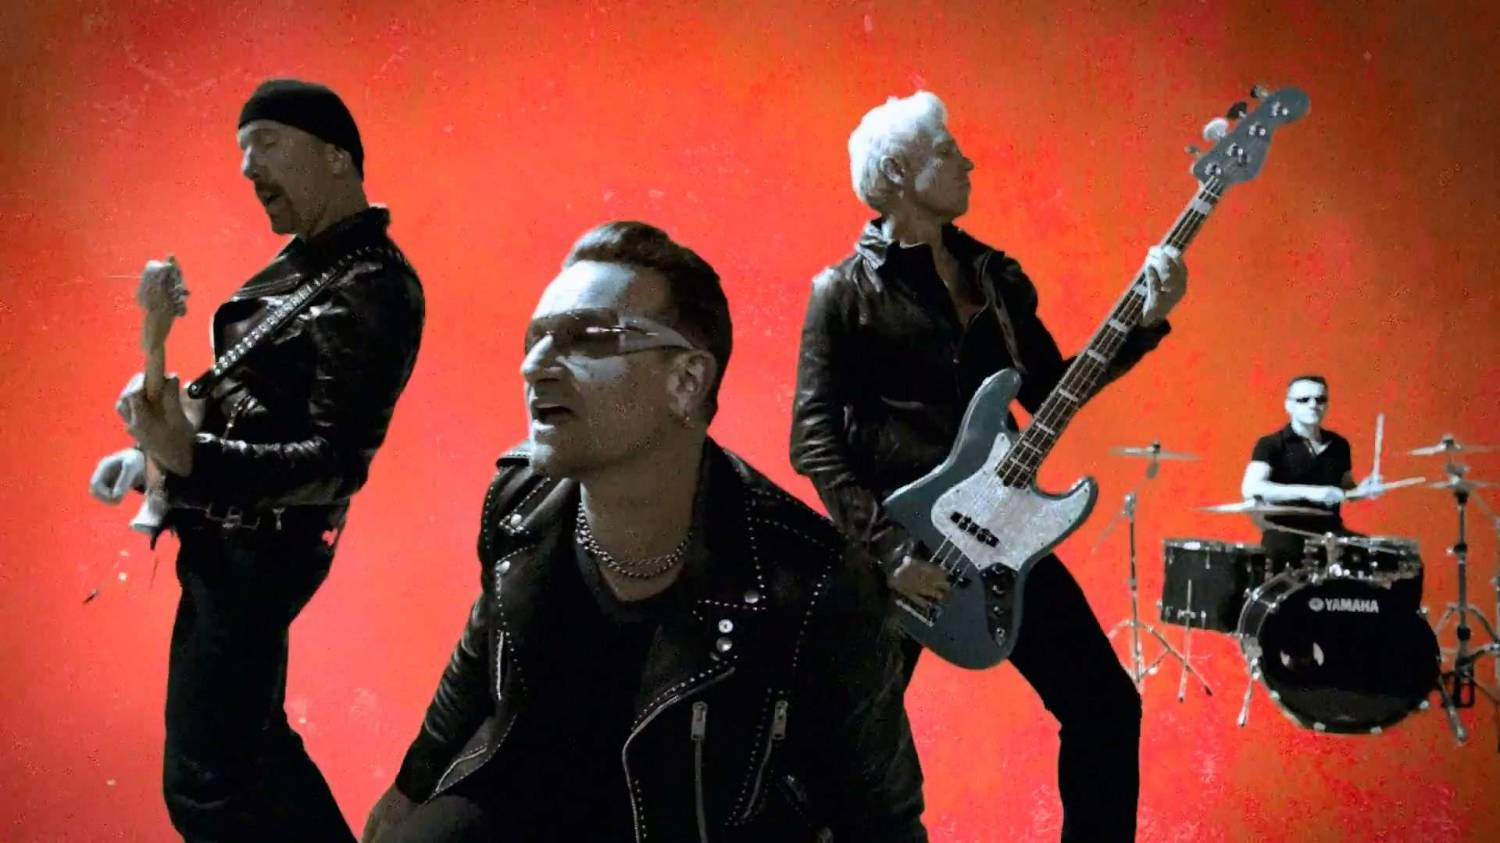 U2 - The Miracle (Of Joey Ramone) (2014) HD 1080p